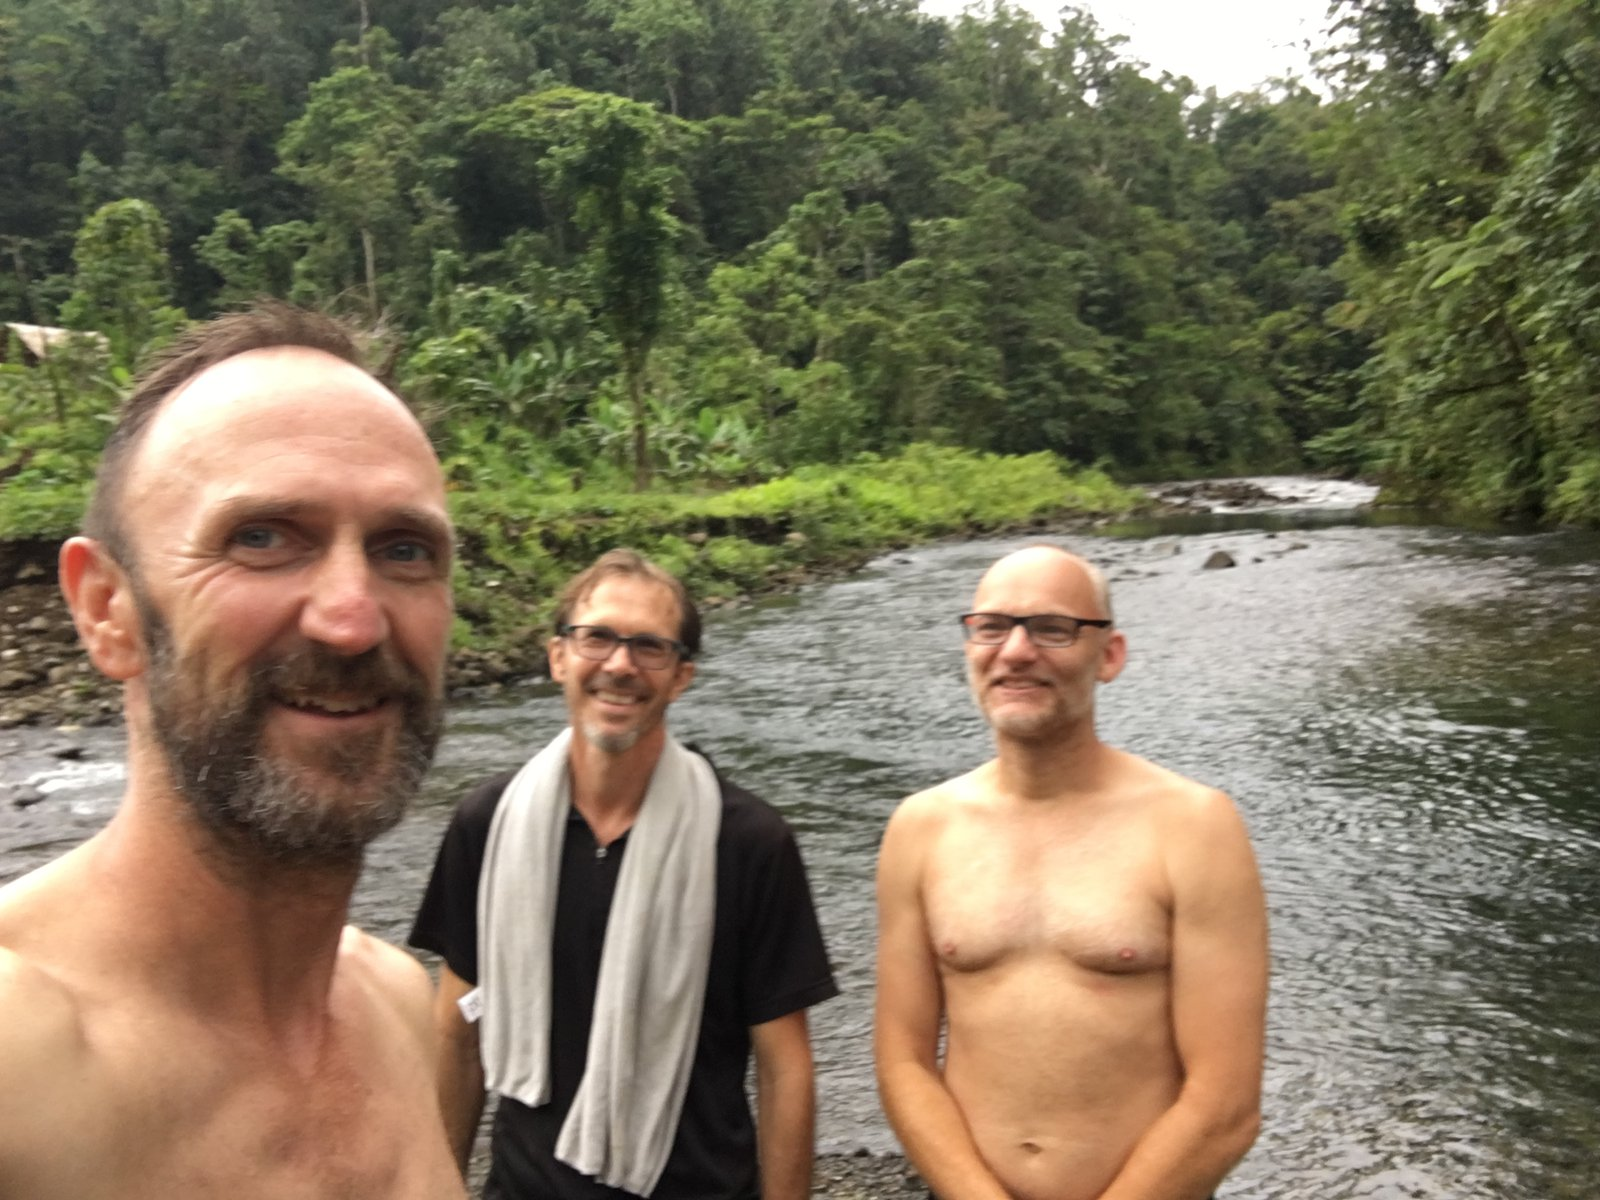 Paul Flemmons, Andrew Mitchell and Frank Köhler down by the river, Malaita.